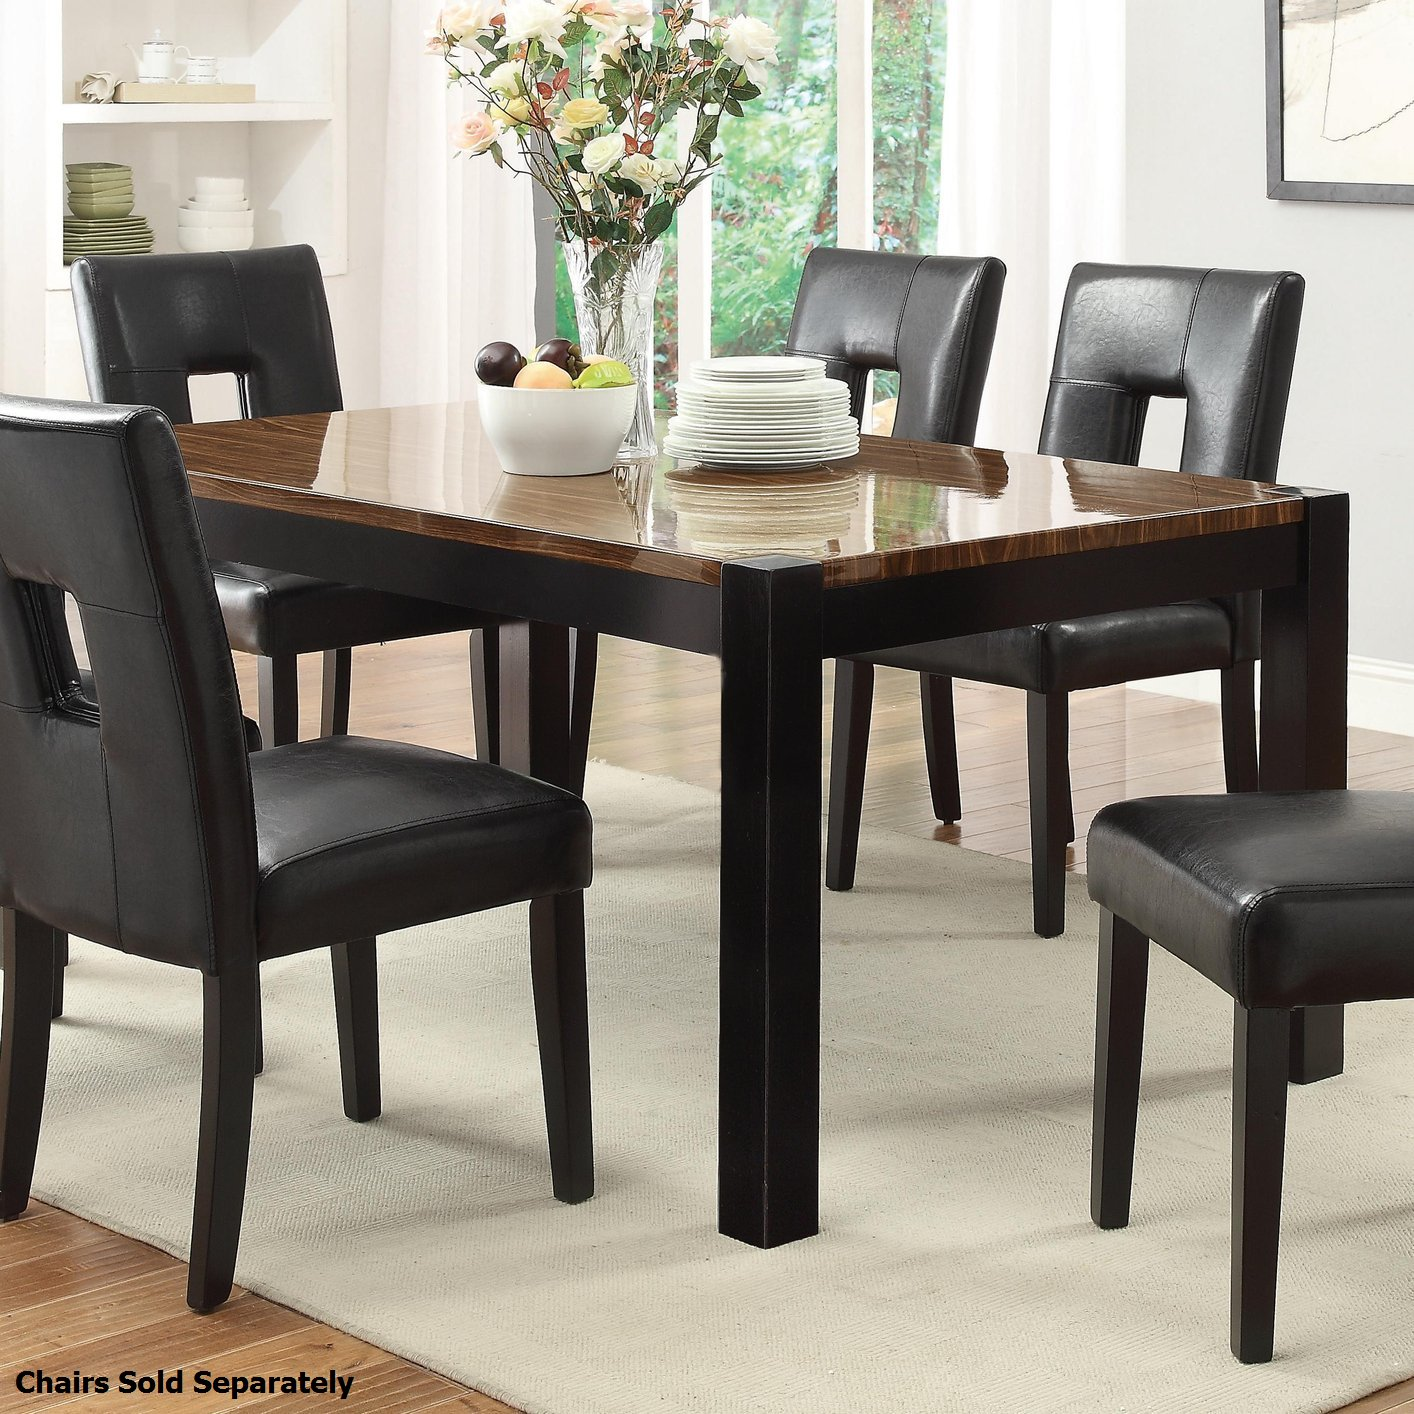 Coaster 103611 black wood dining table steal a sofa for Black wood dining table